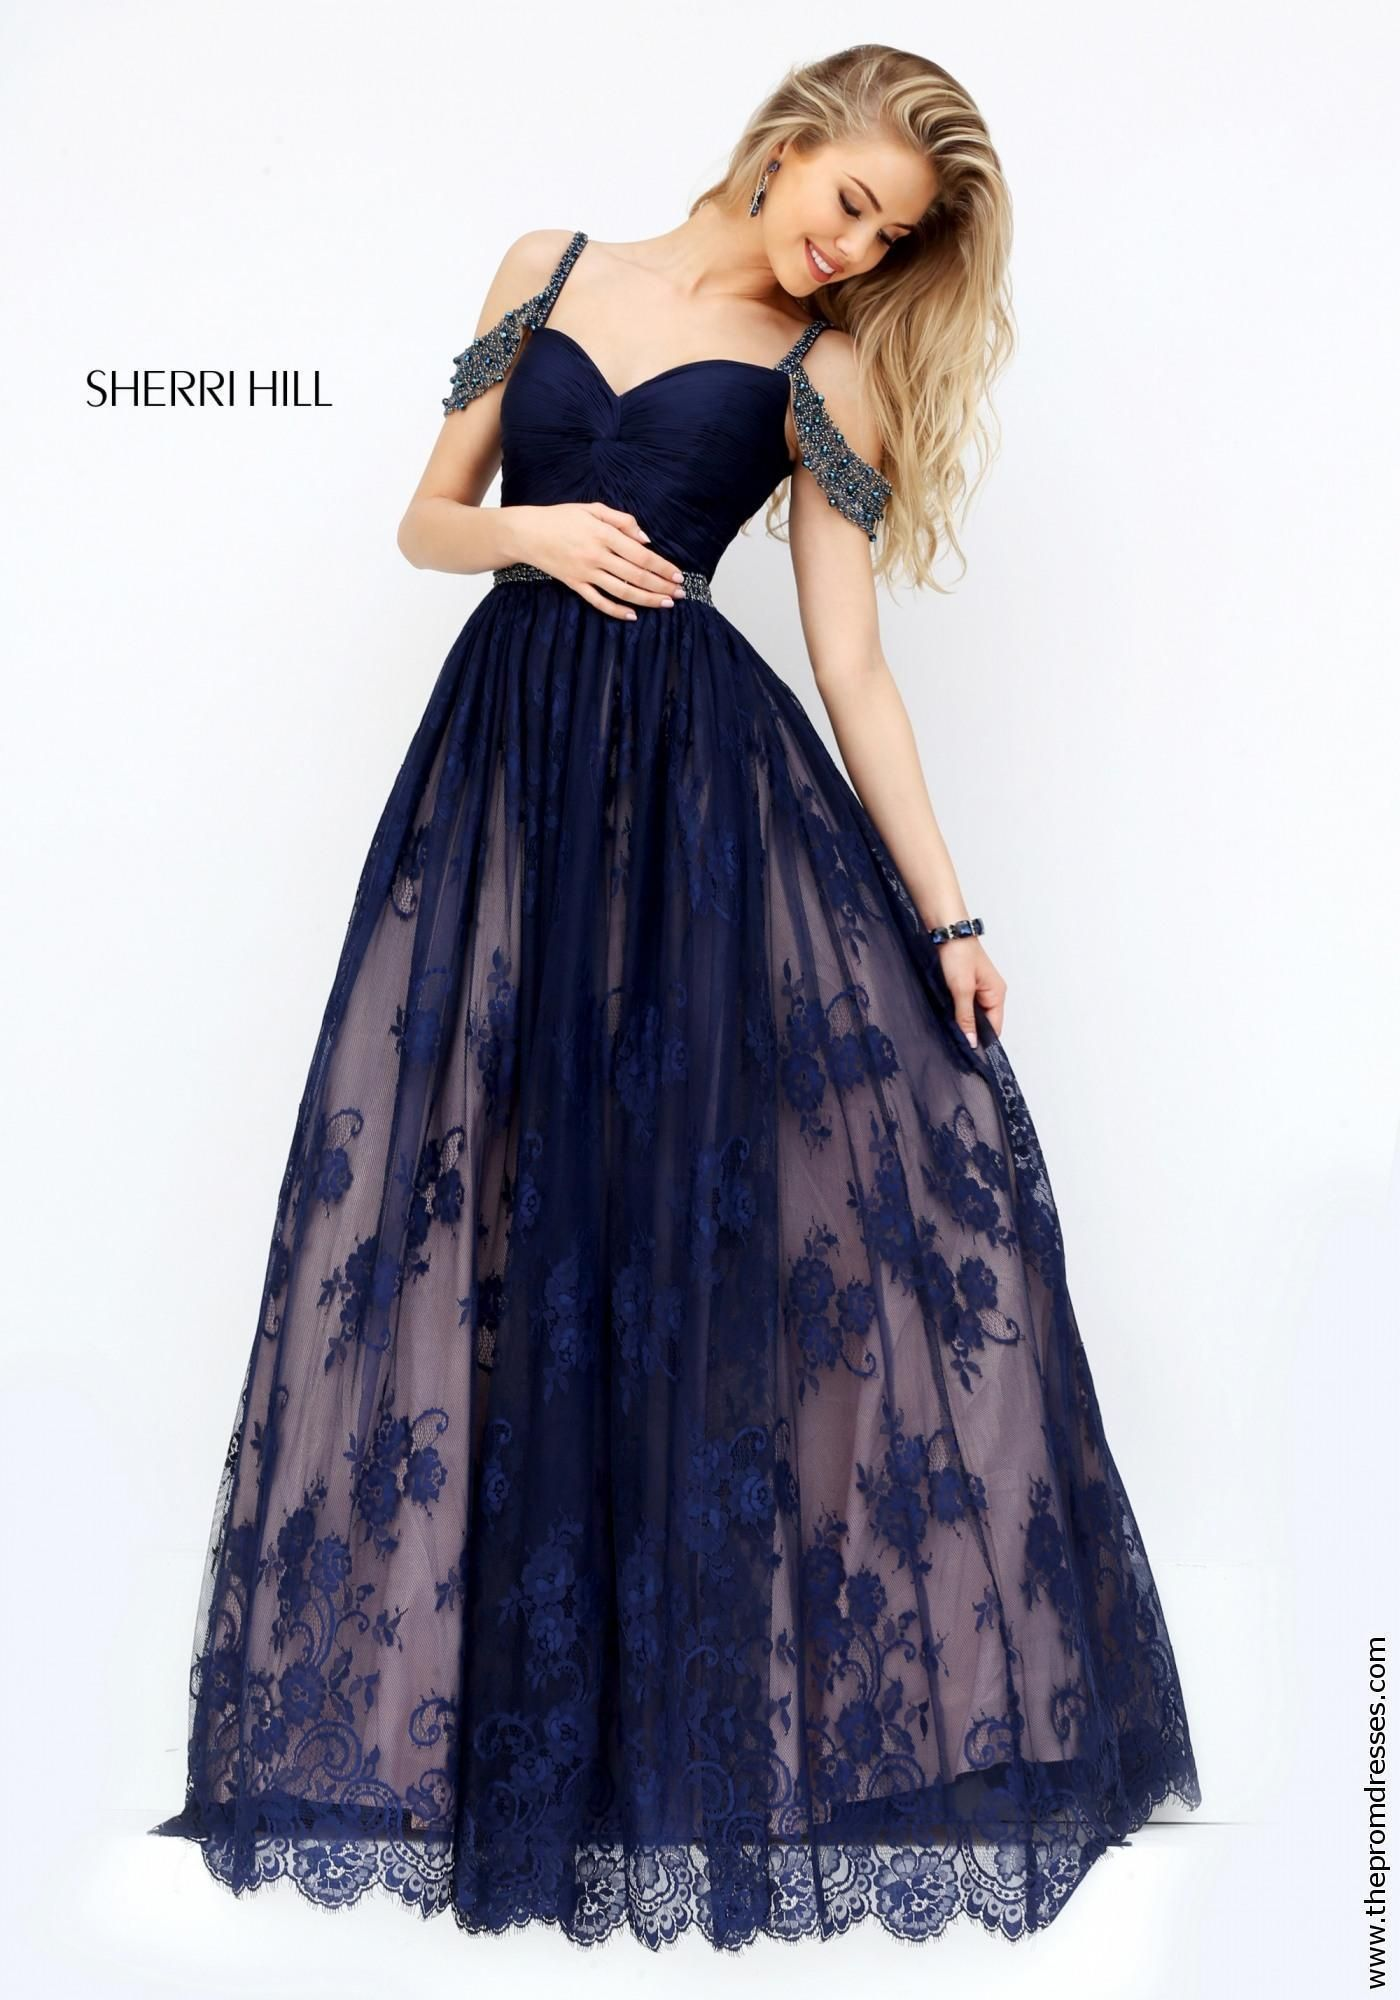 Sherri hill prom gowns and clothes